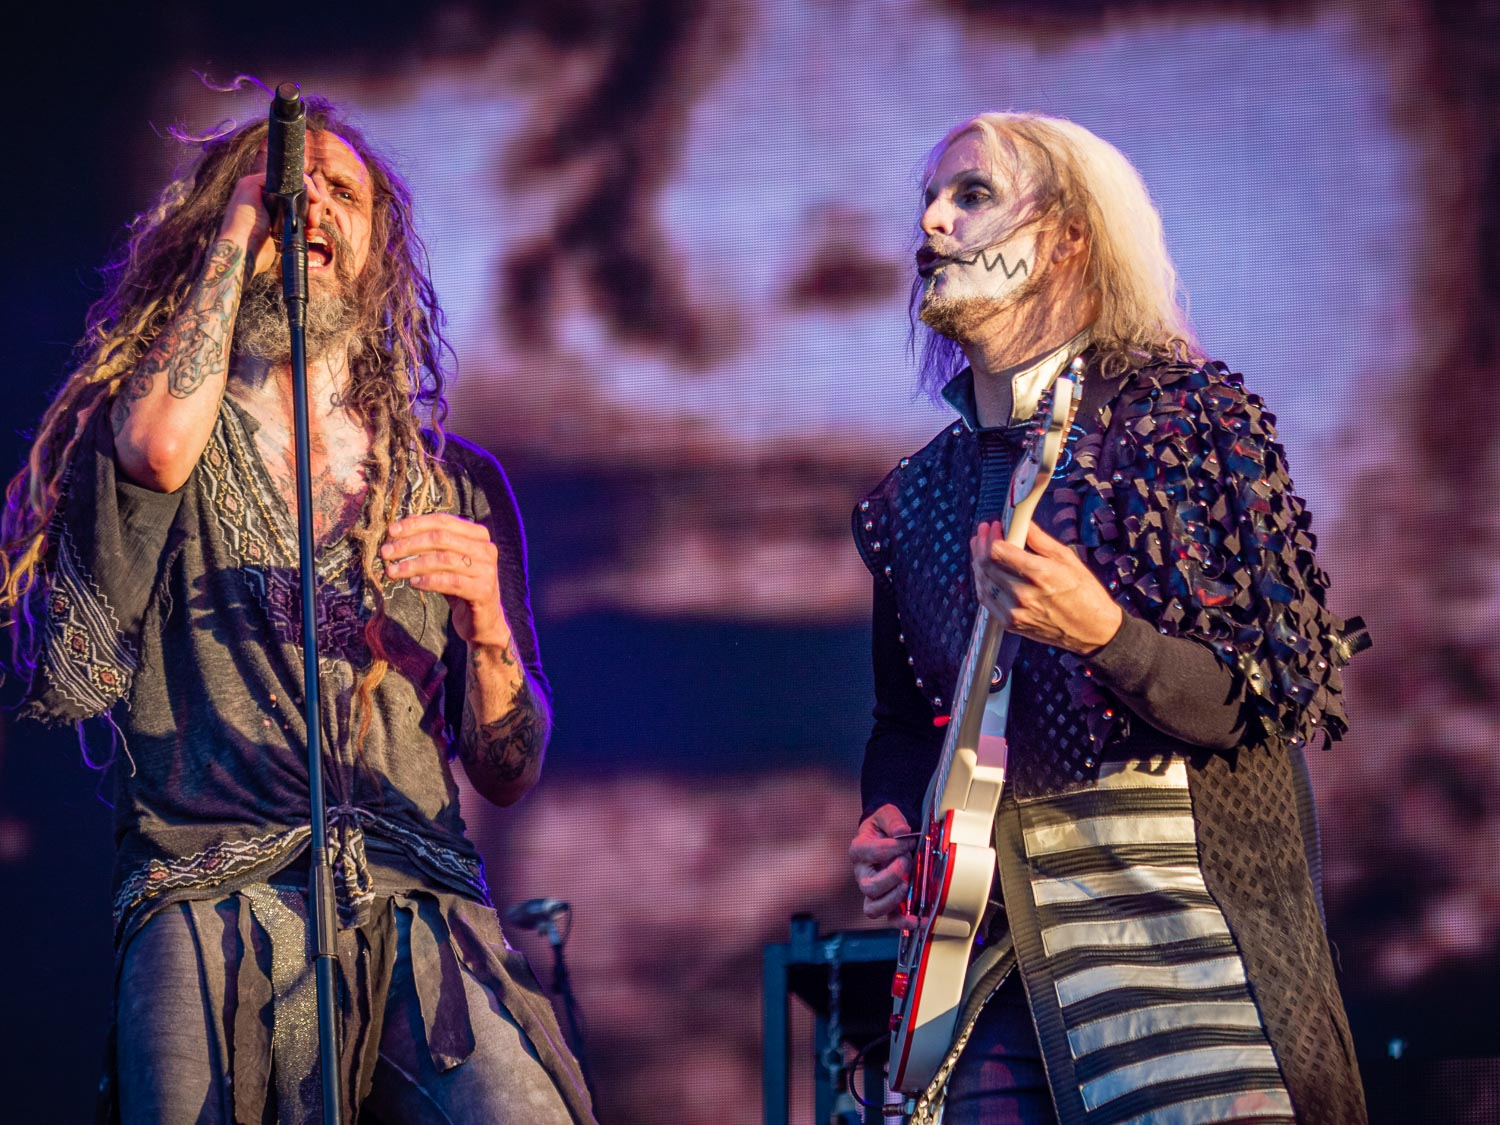 Rob Zombie live on stage at the 2019 Copenhell Metal Festival - here Rob Zombie and John 5